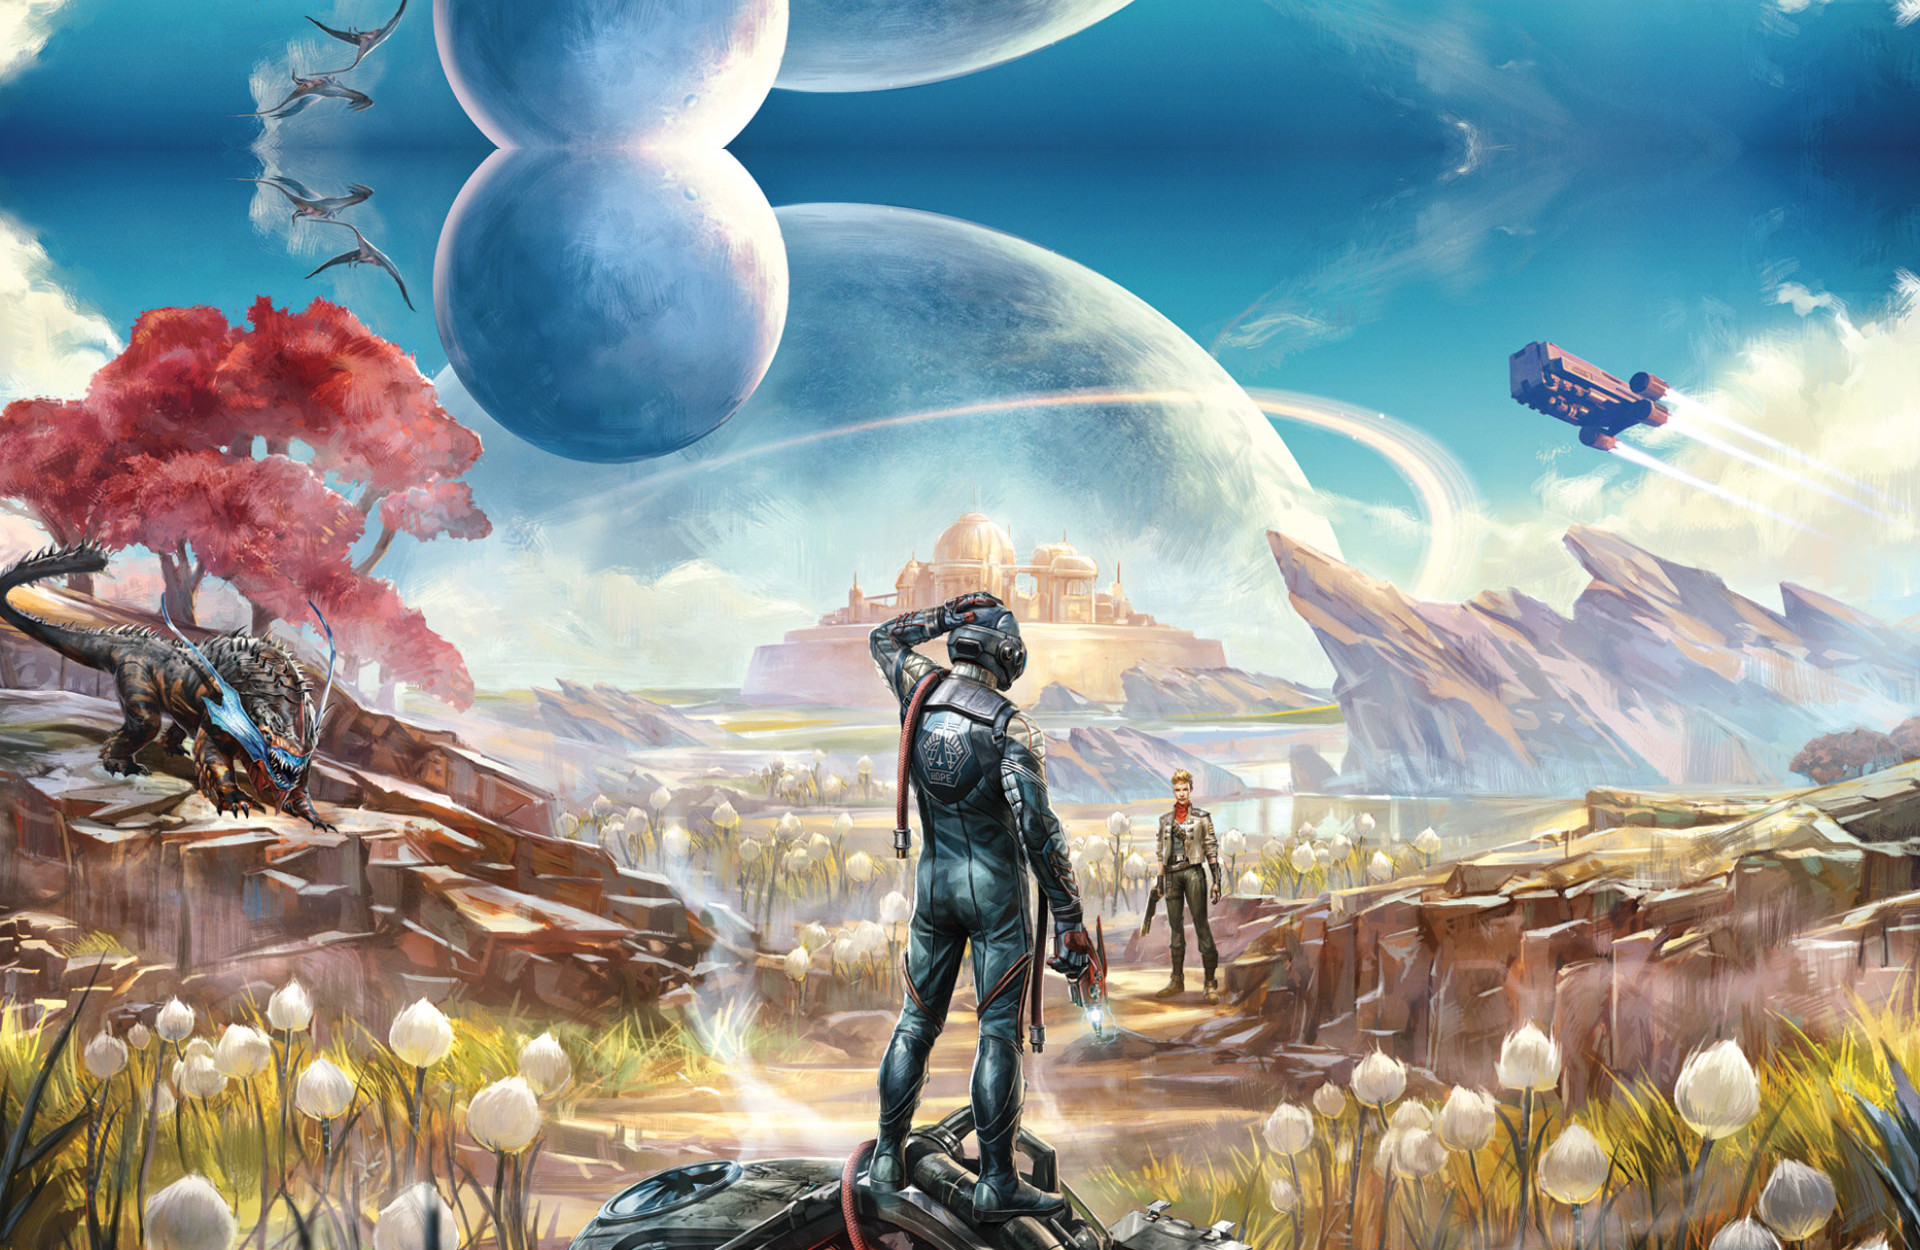 The Outer Worlds. A disoriented traveler looks at a woman in the distance on an alien world.